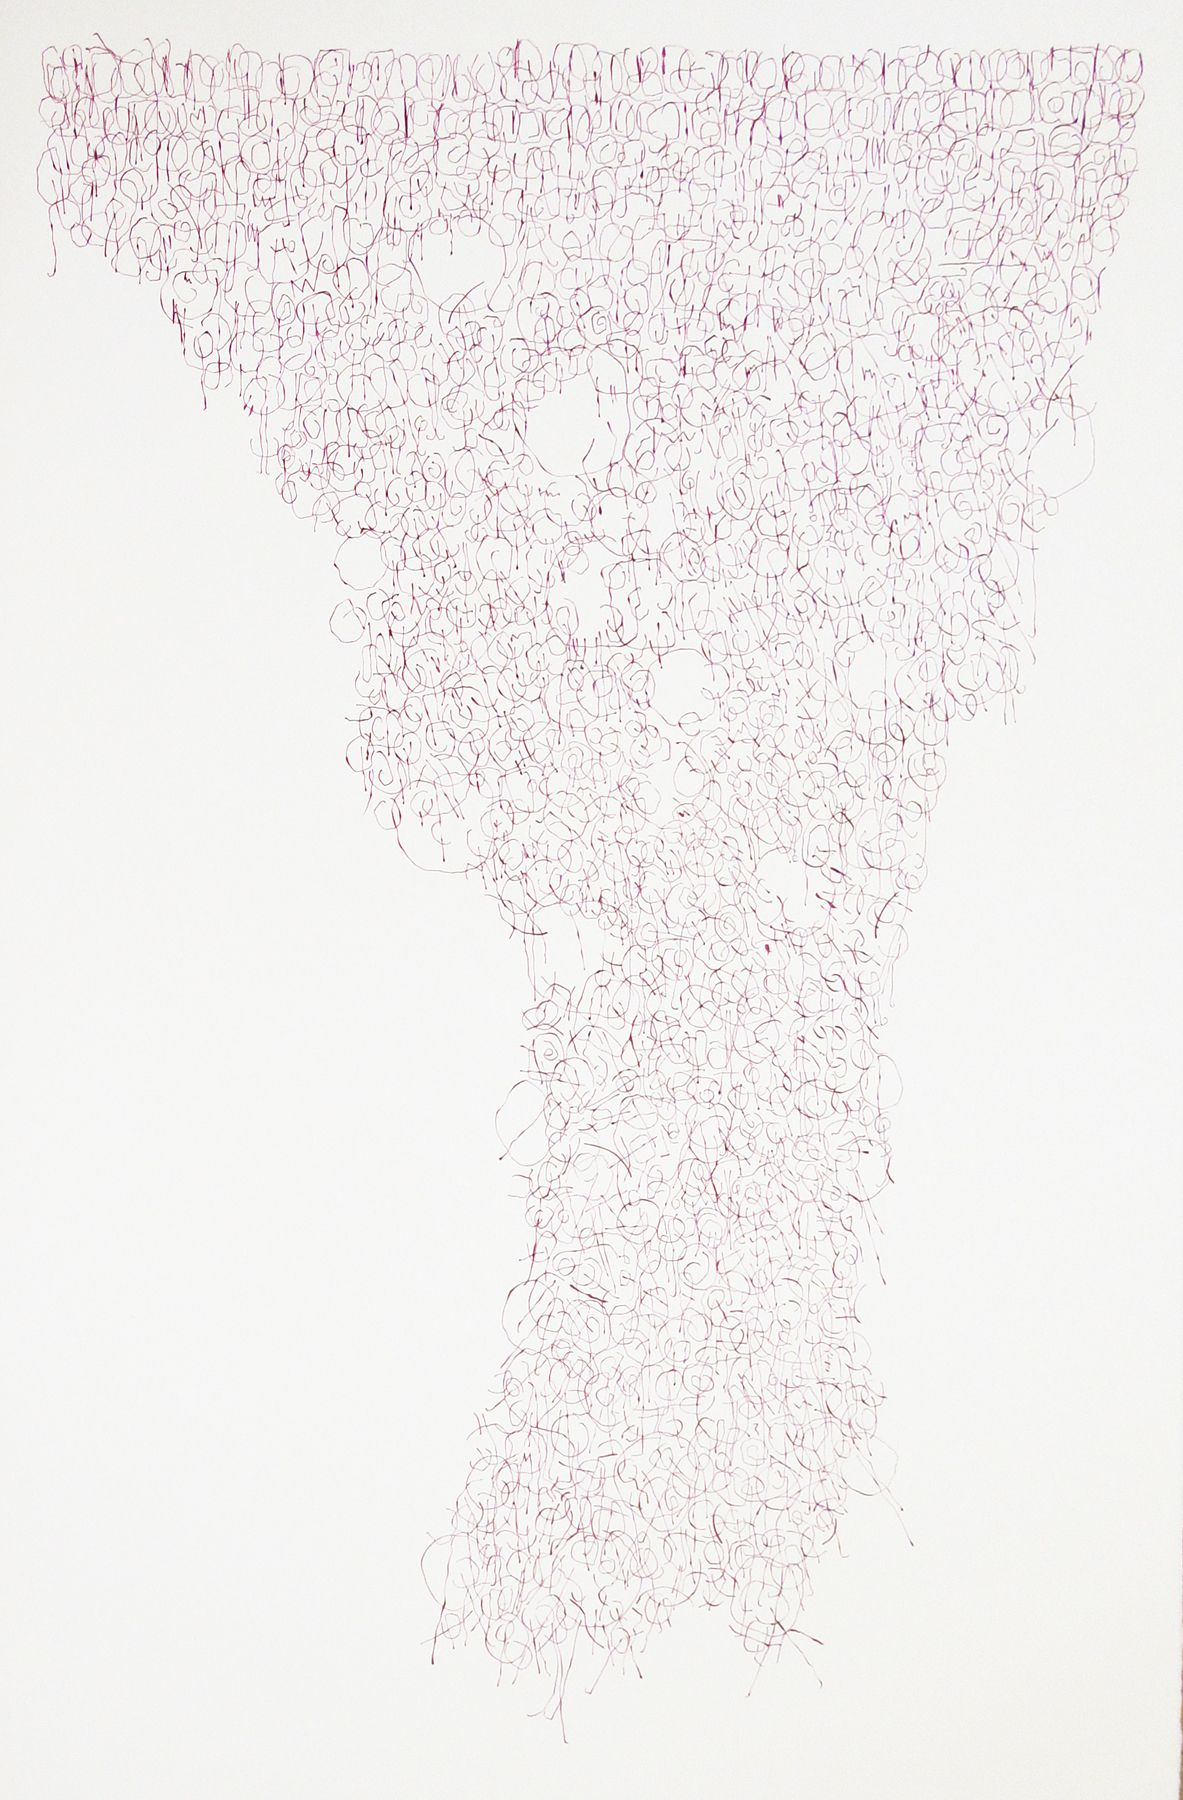 Alice Attie - Proximities - Howard Greenberg Gallery - 2014